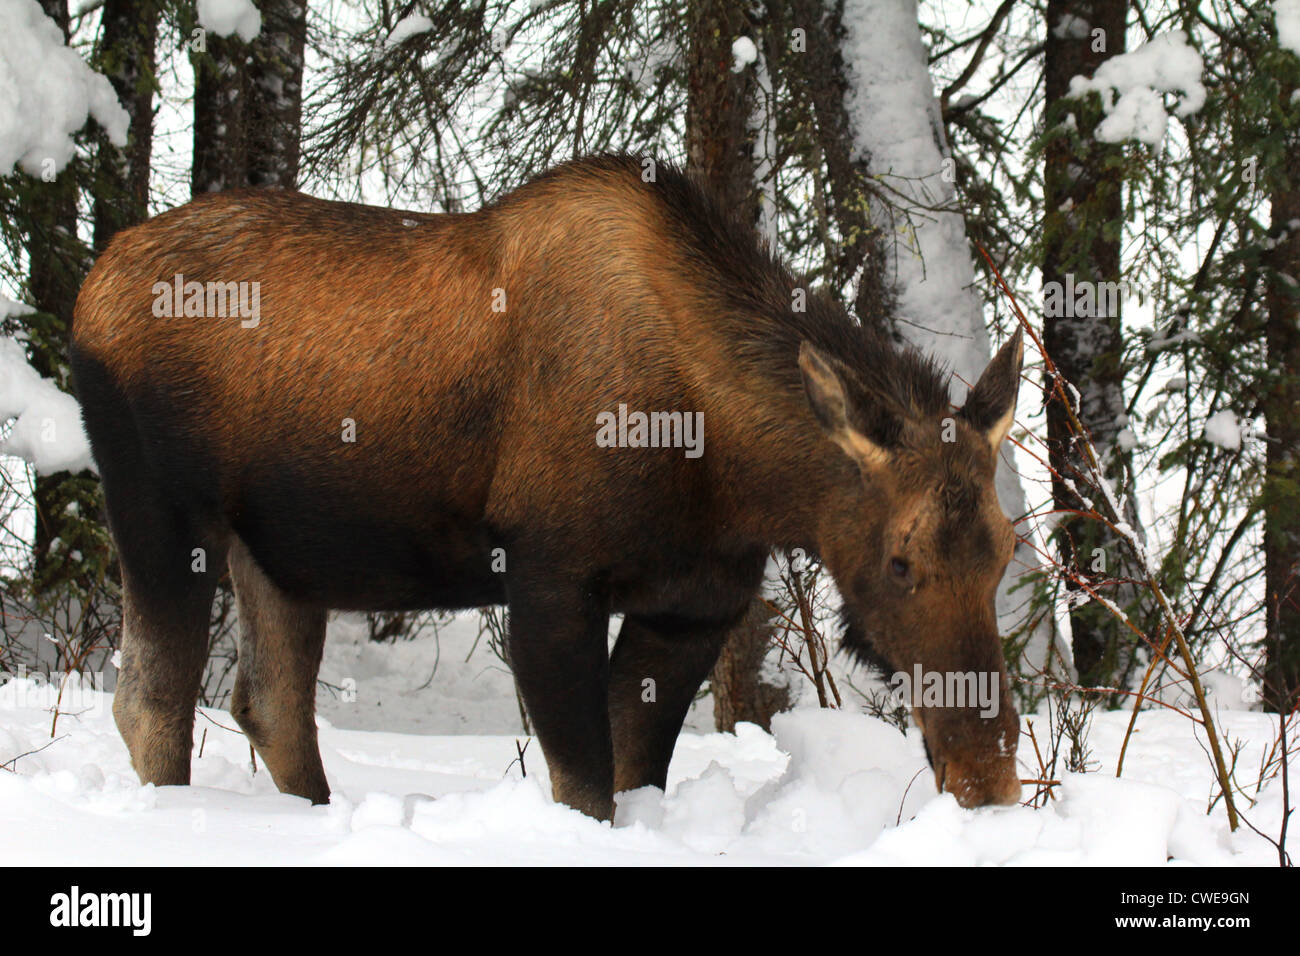 40,912.04259 Cow moose (Alces alces), a black and brown full-grown adult, browsing in the deep snow in a winter - Stock Image